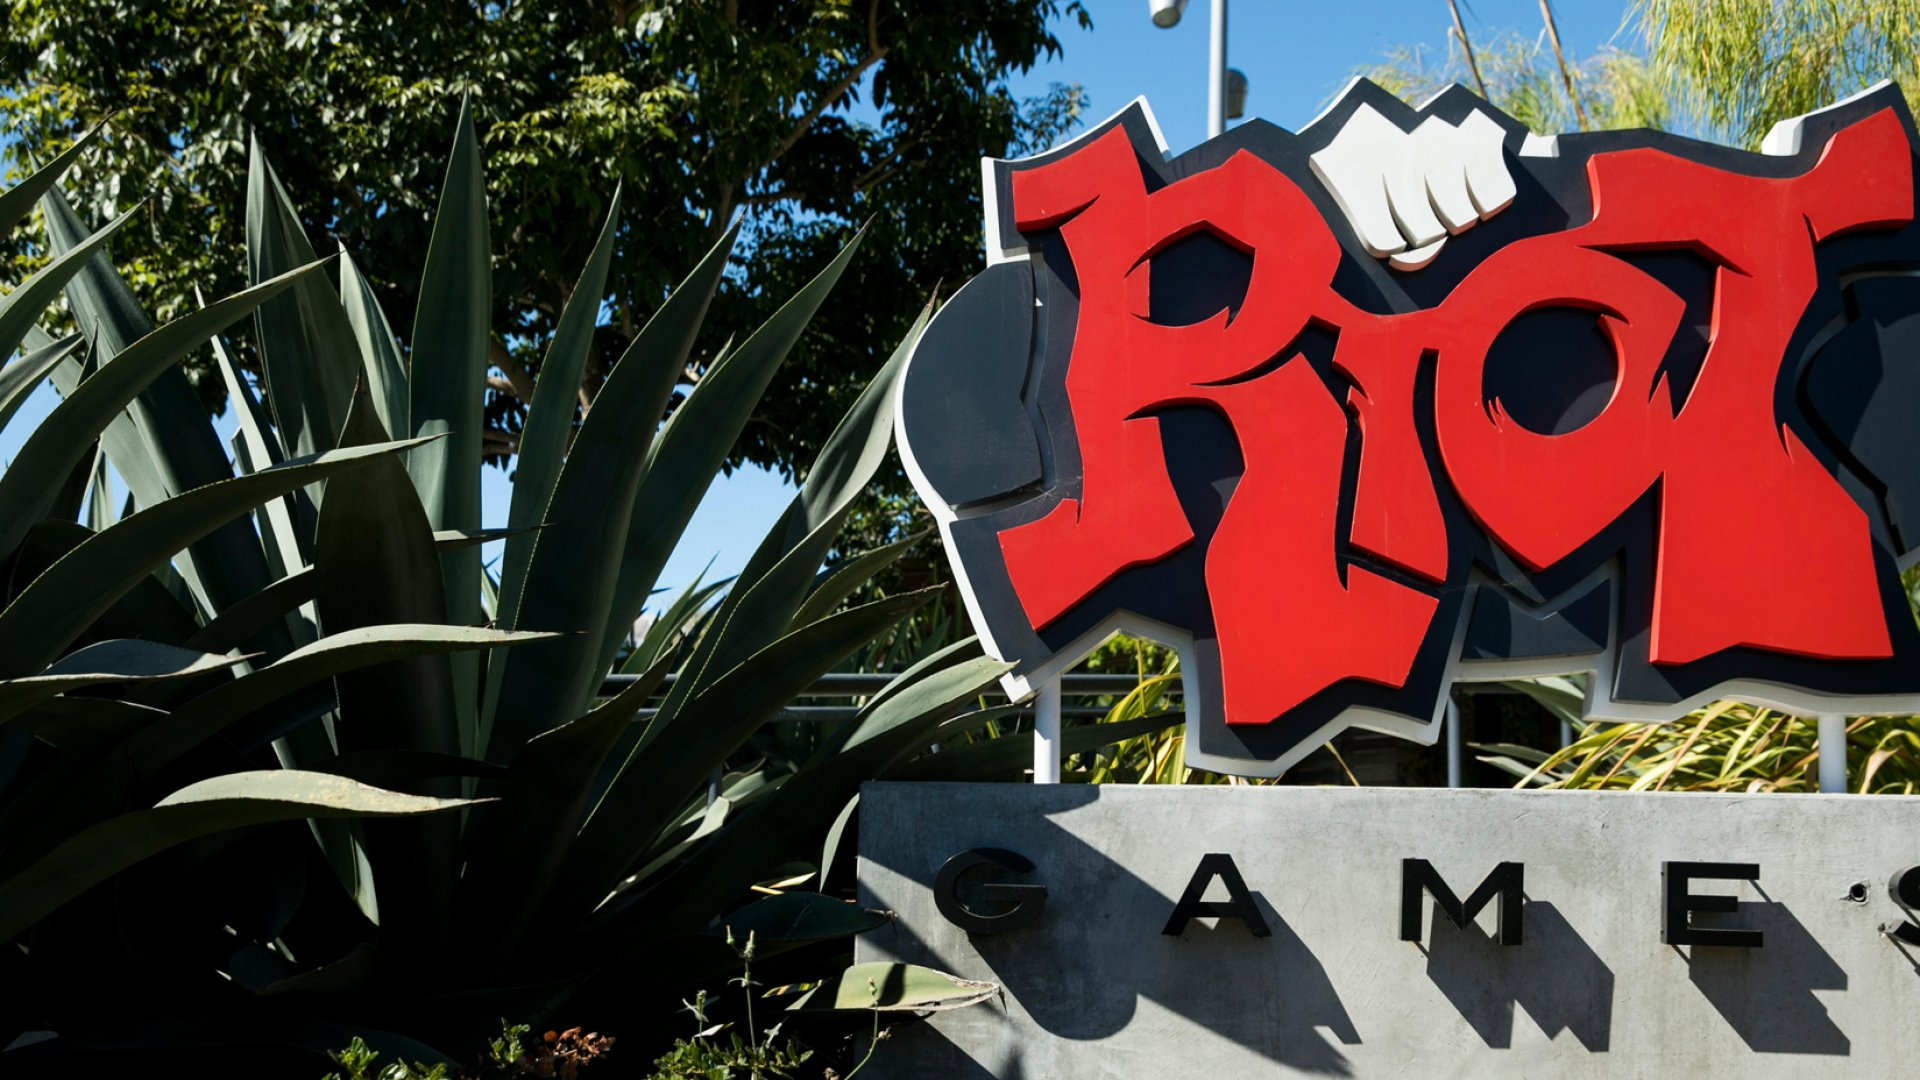 Over 150 Riot Games Employees Walked Out to Protest Forced Arbitration and Sexist Culture